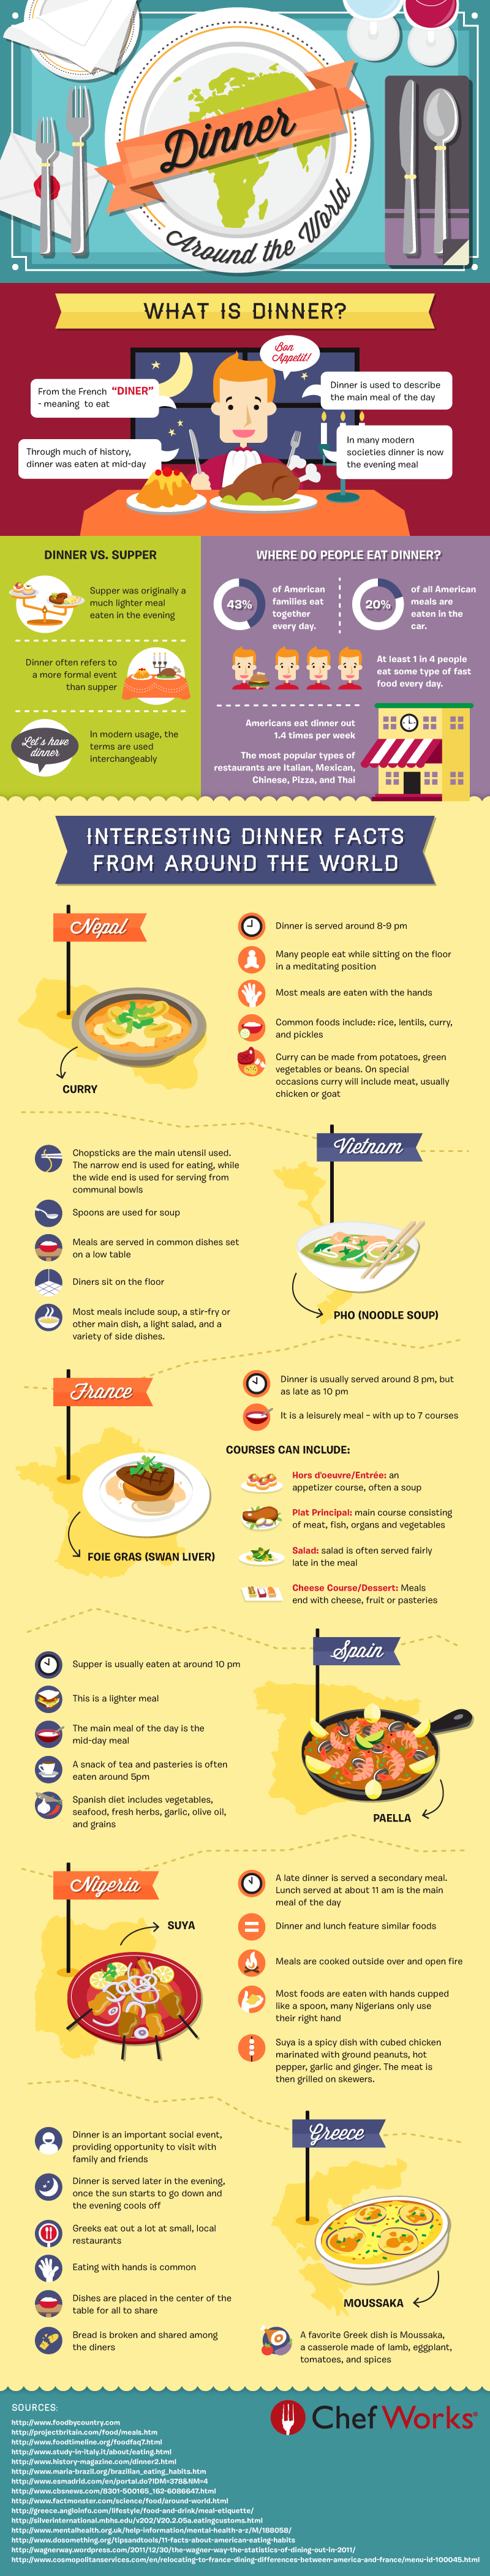 Interesting Facts About Dinner From Around The World